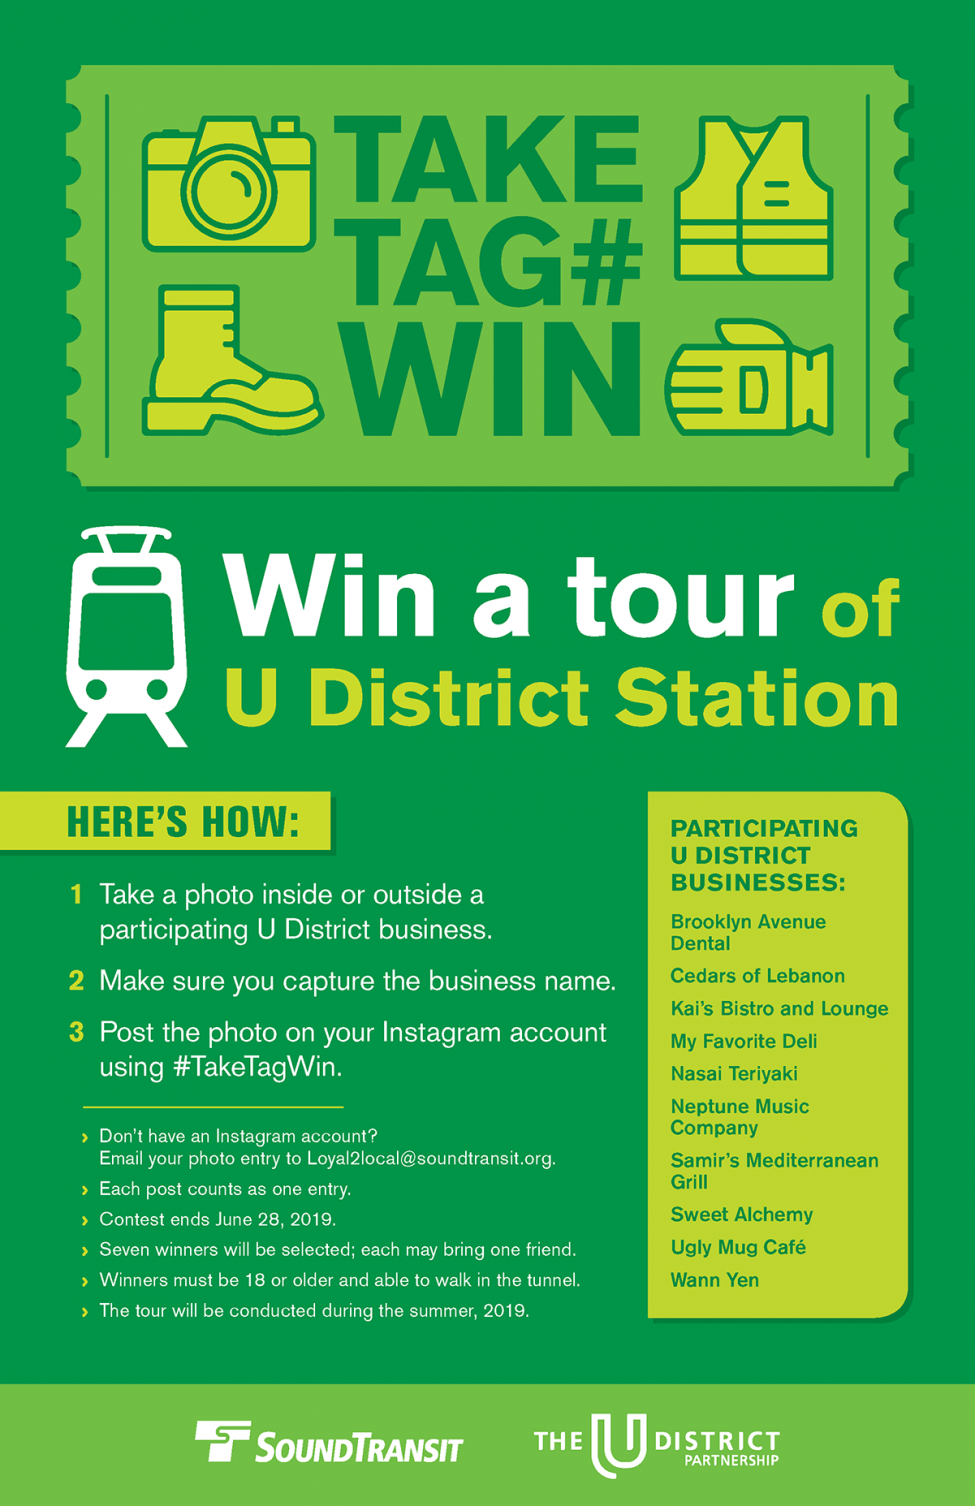 U District Station tour contest flyer take, tag, win.